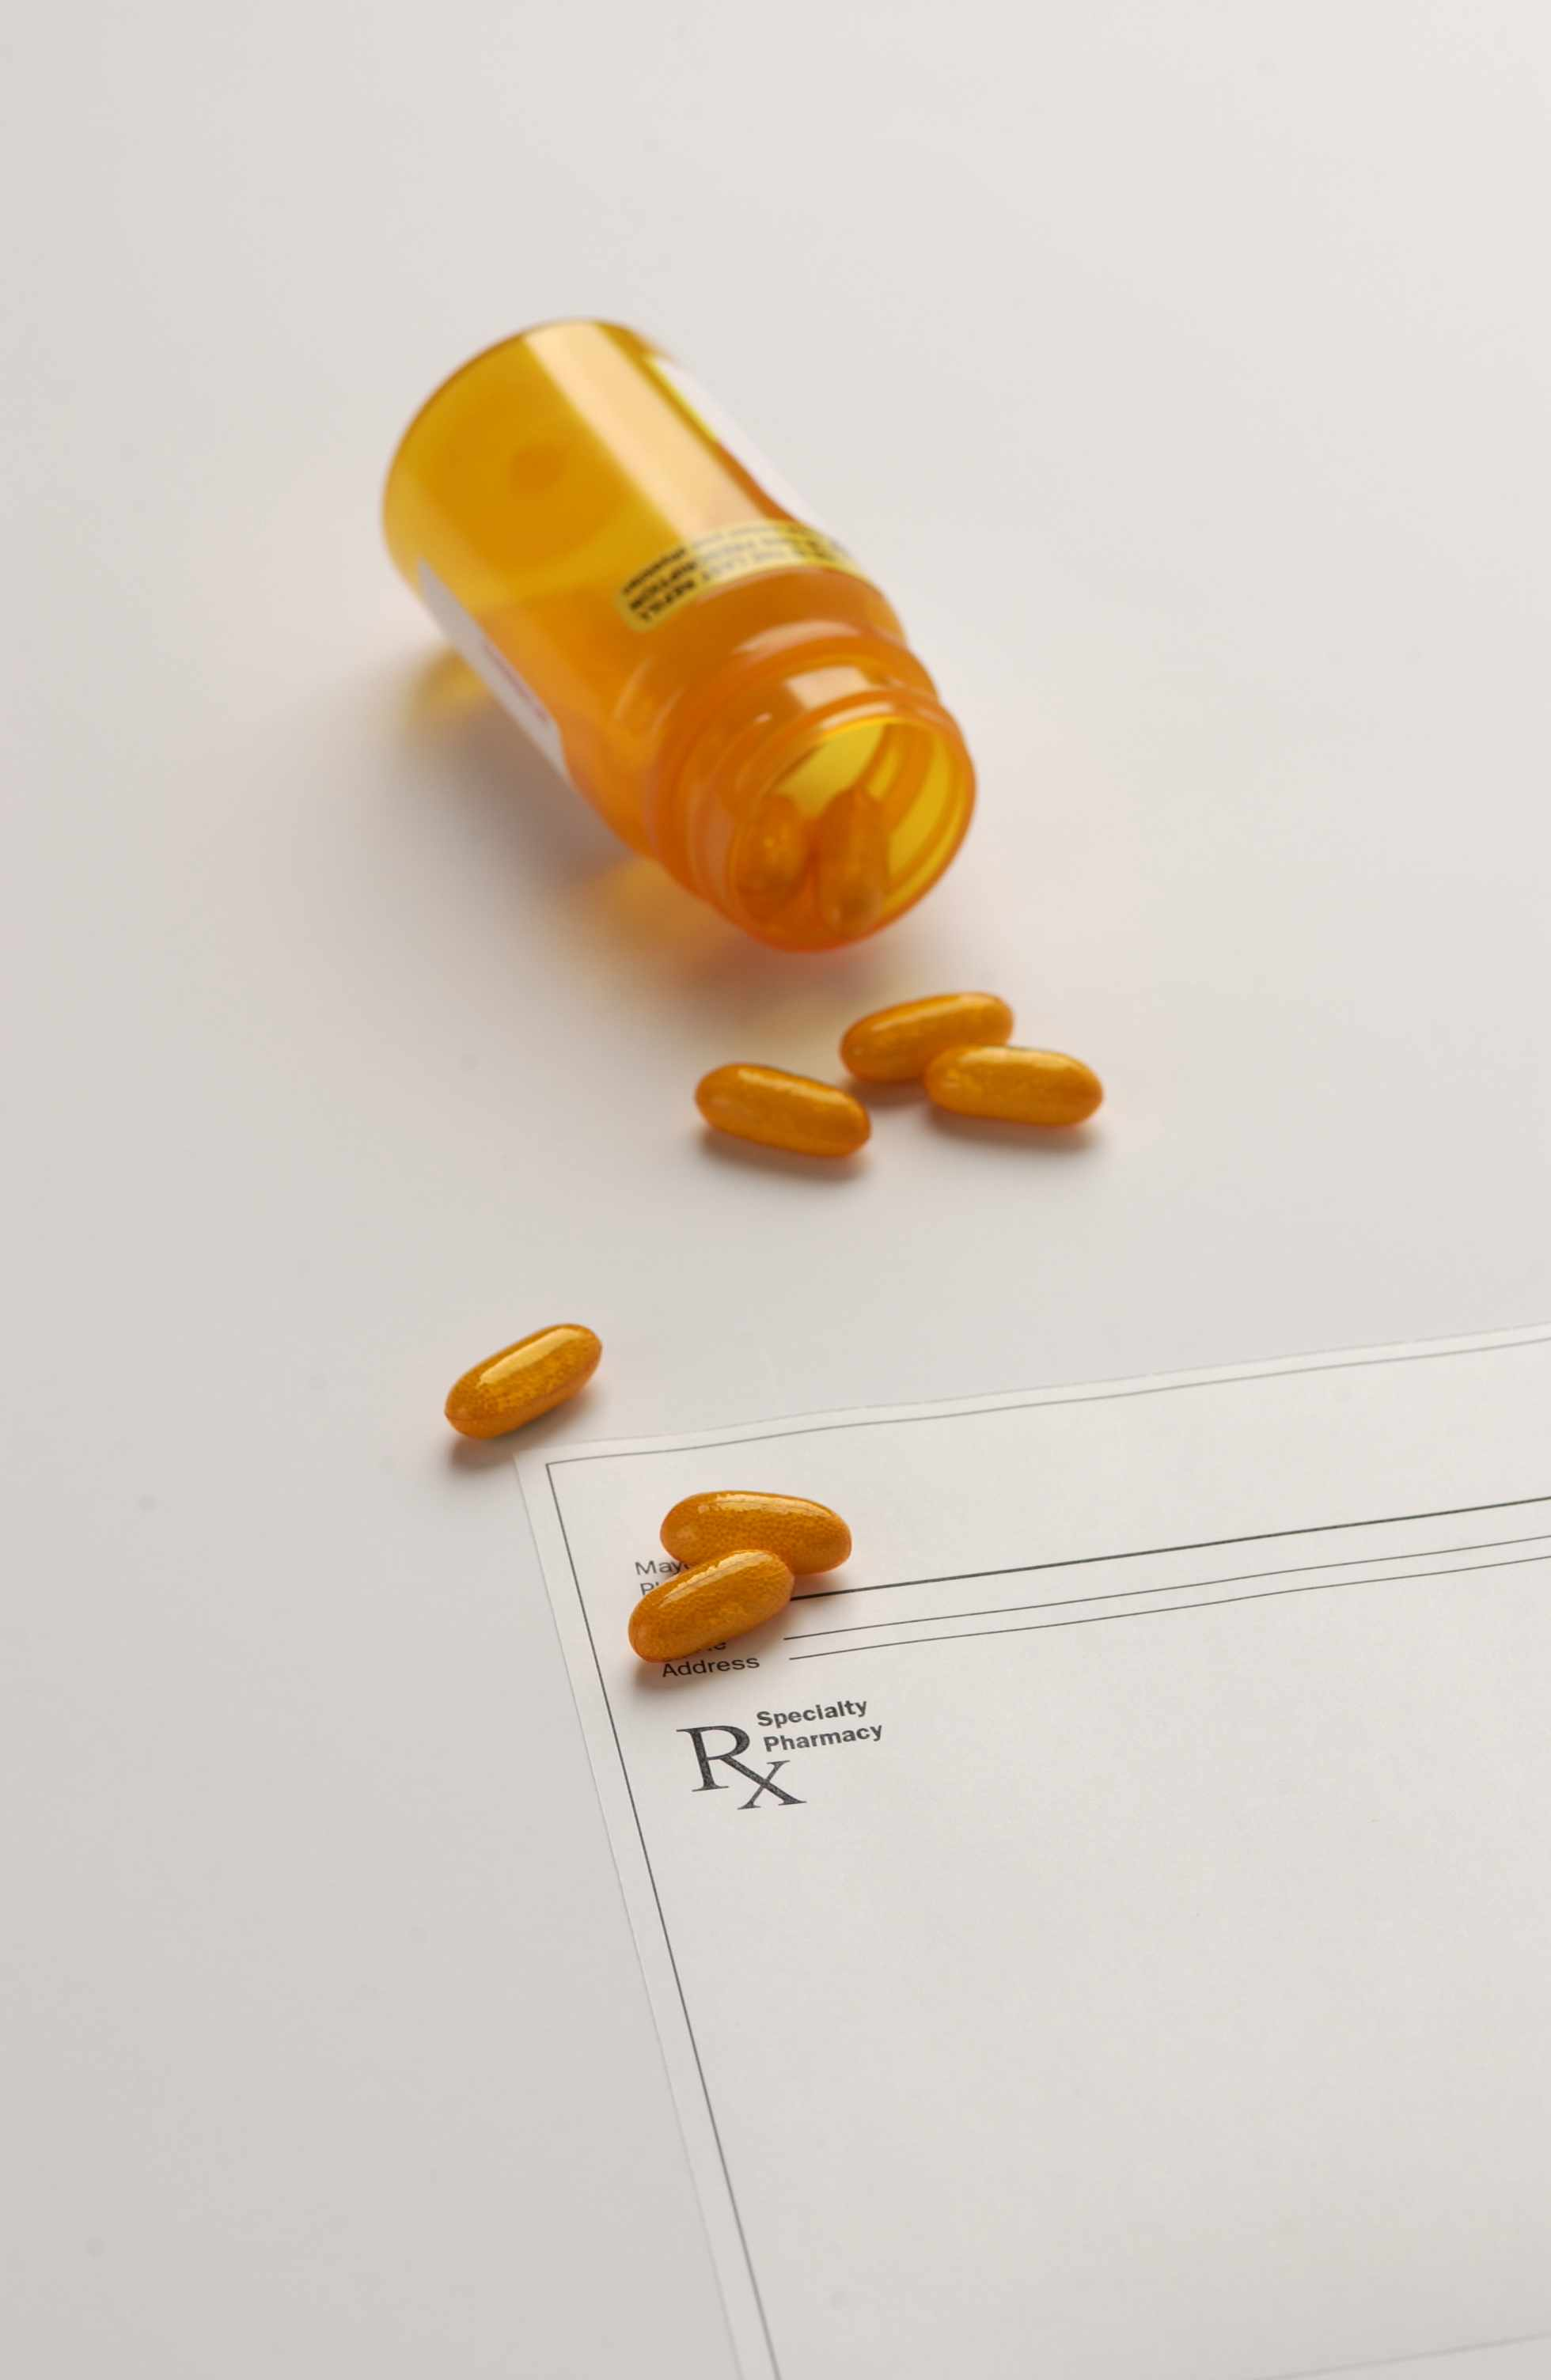 Photo of medication and prescription form. Source: Mayo Clinic.